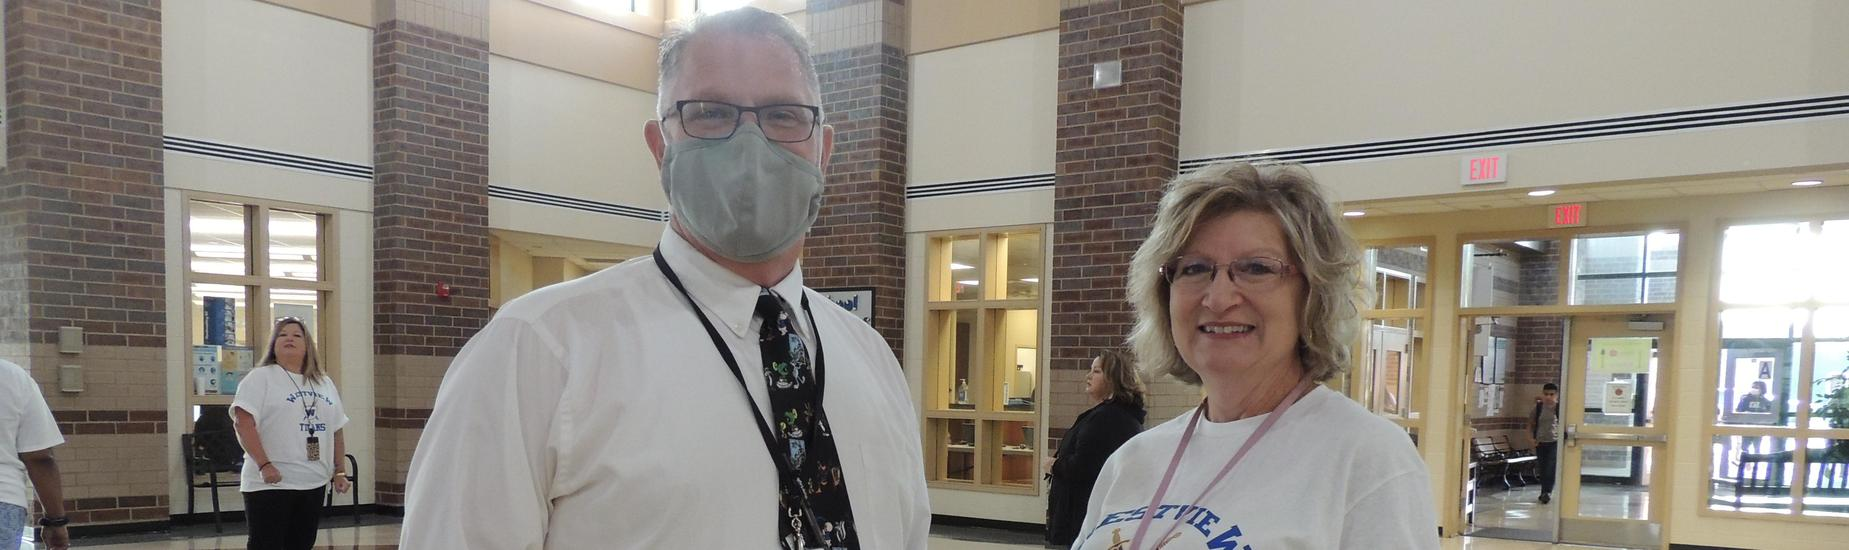 Mr. Fortman and Ms. Beggs